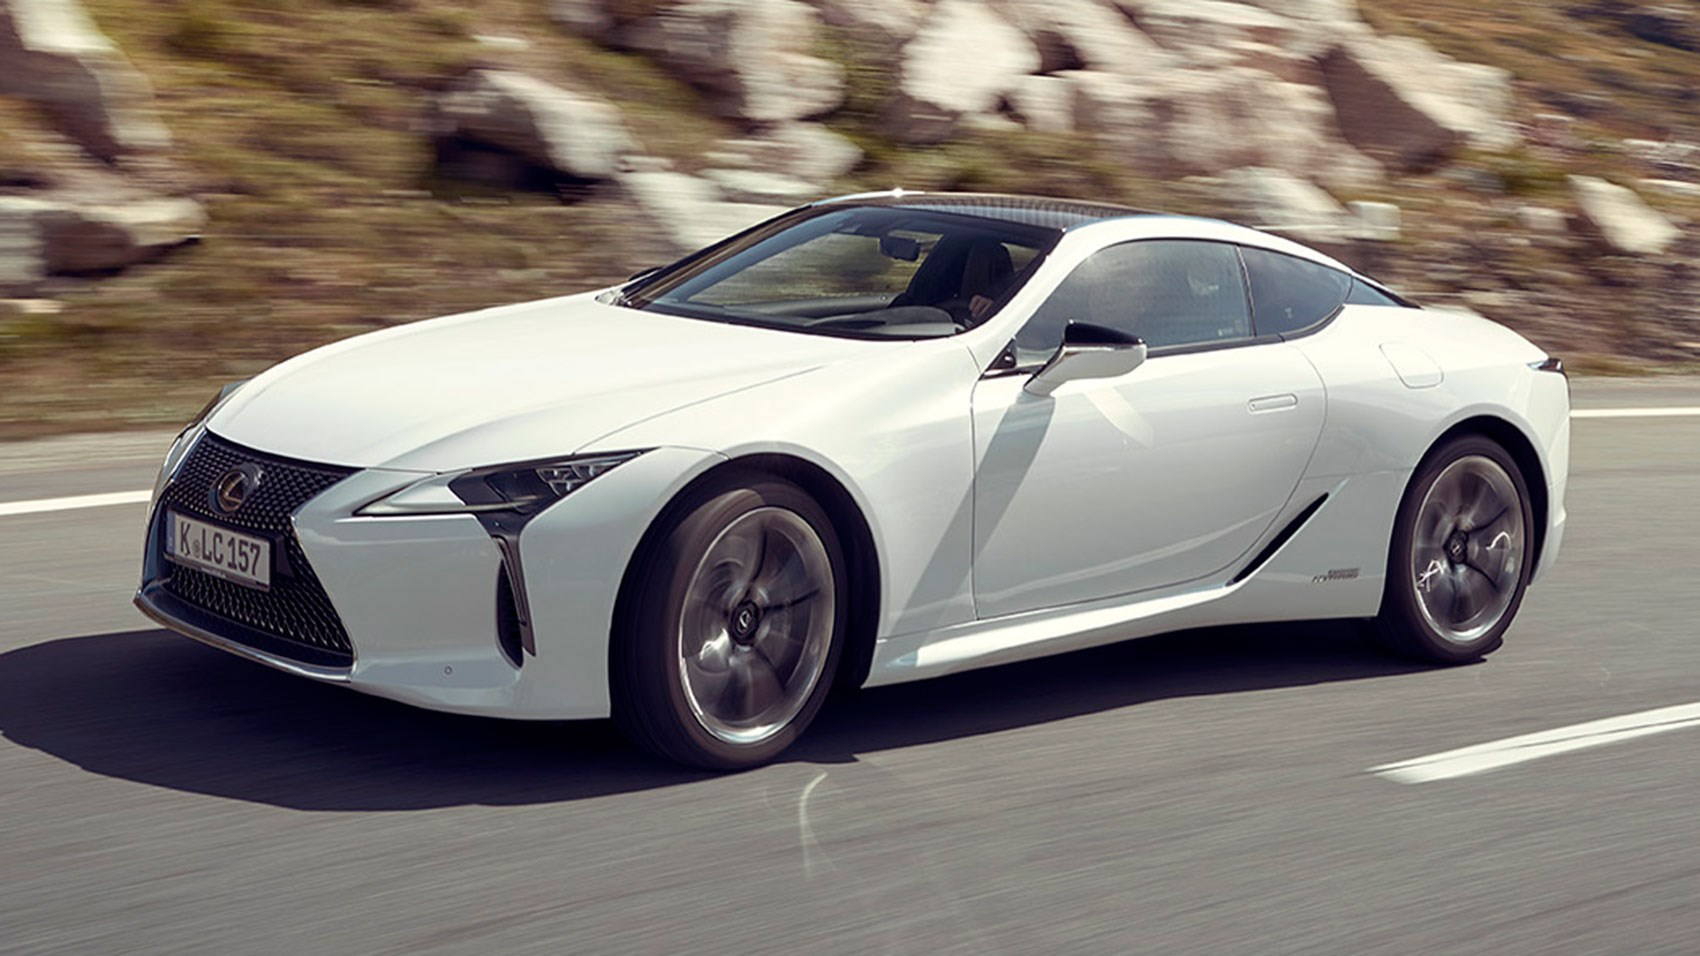 lexus lc500 review meet the slickest lexus this side of the lfa car magazine. Black Bedroom Furniture Sets. Home Design Ideas